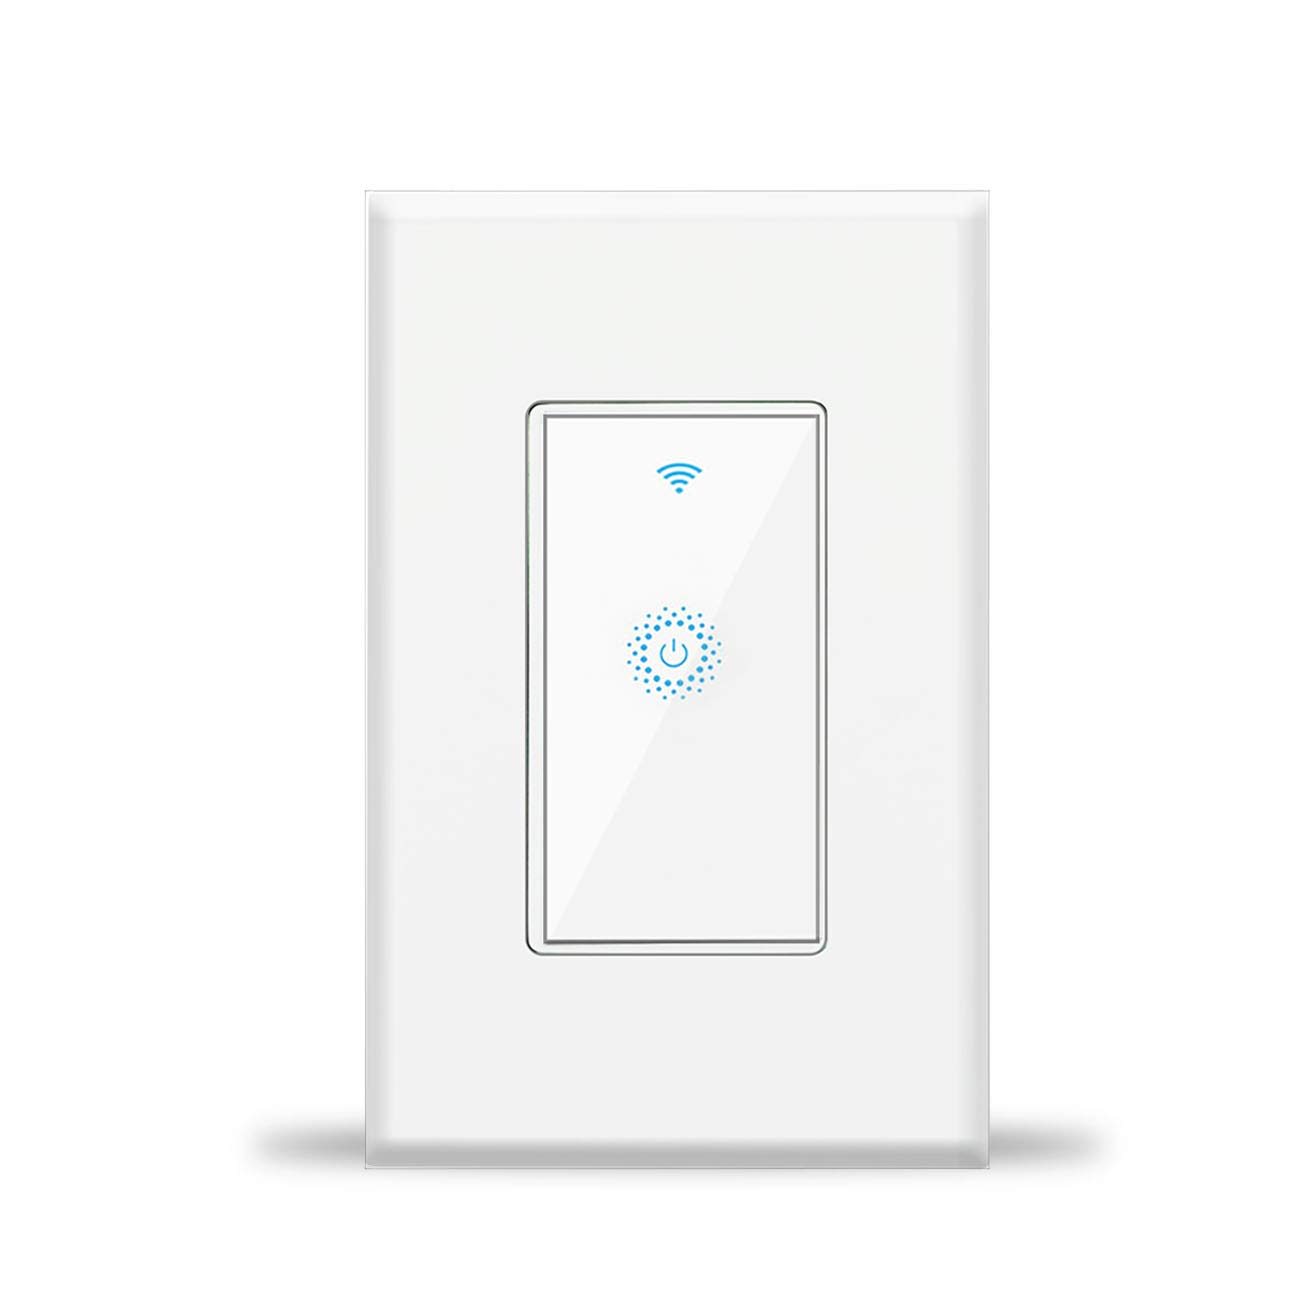 Wifi Light Switches Smart Switch, Wireless remote control, White Neutral Wire Required, Smart Hub for Light bulbs, Compatible with Amazon Alexa, Google Home and IFTTT